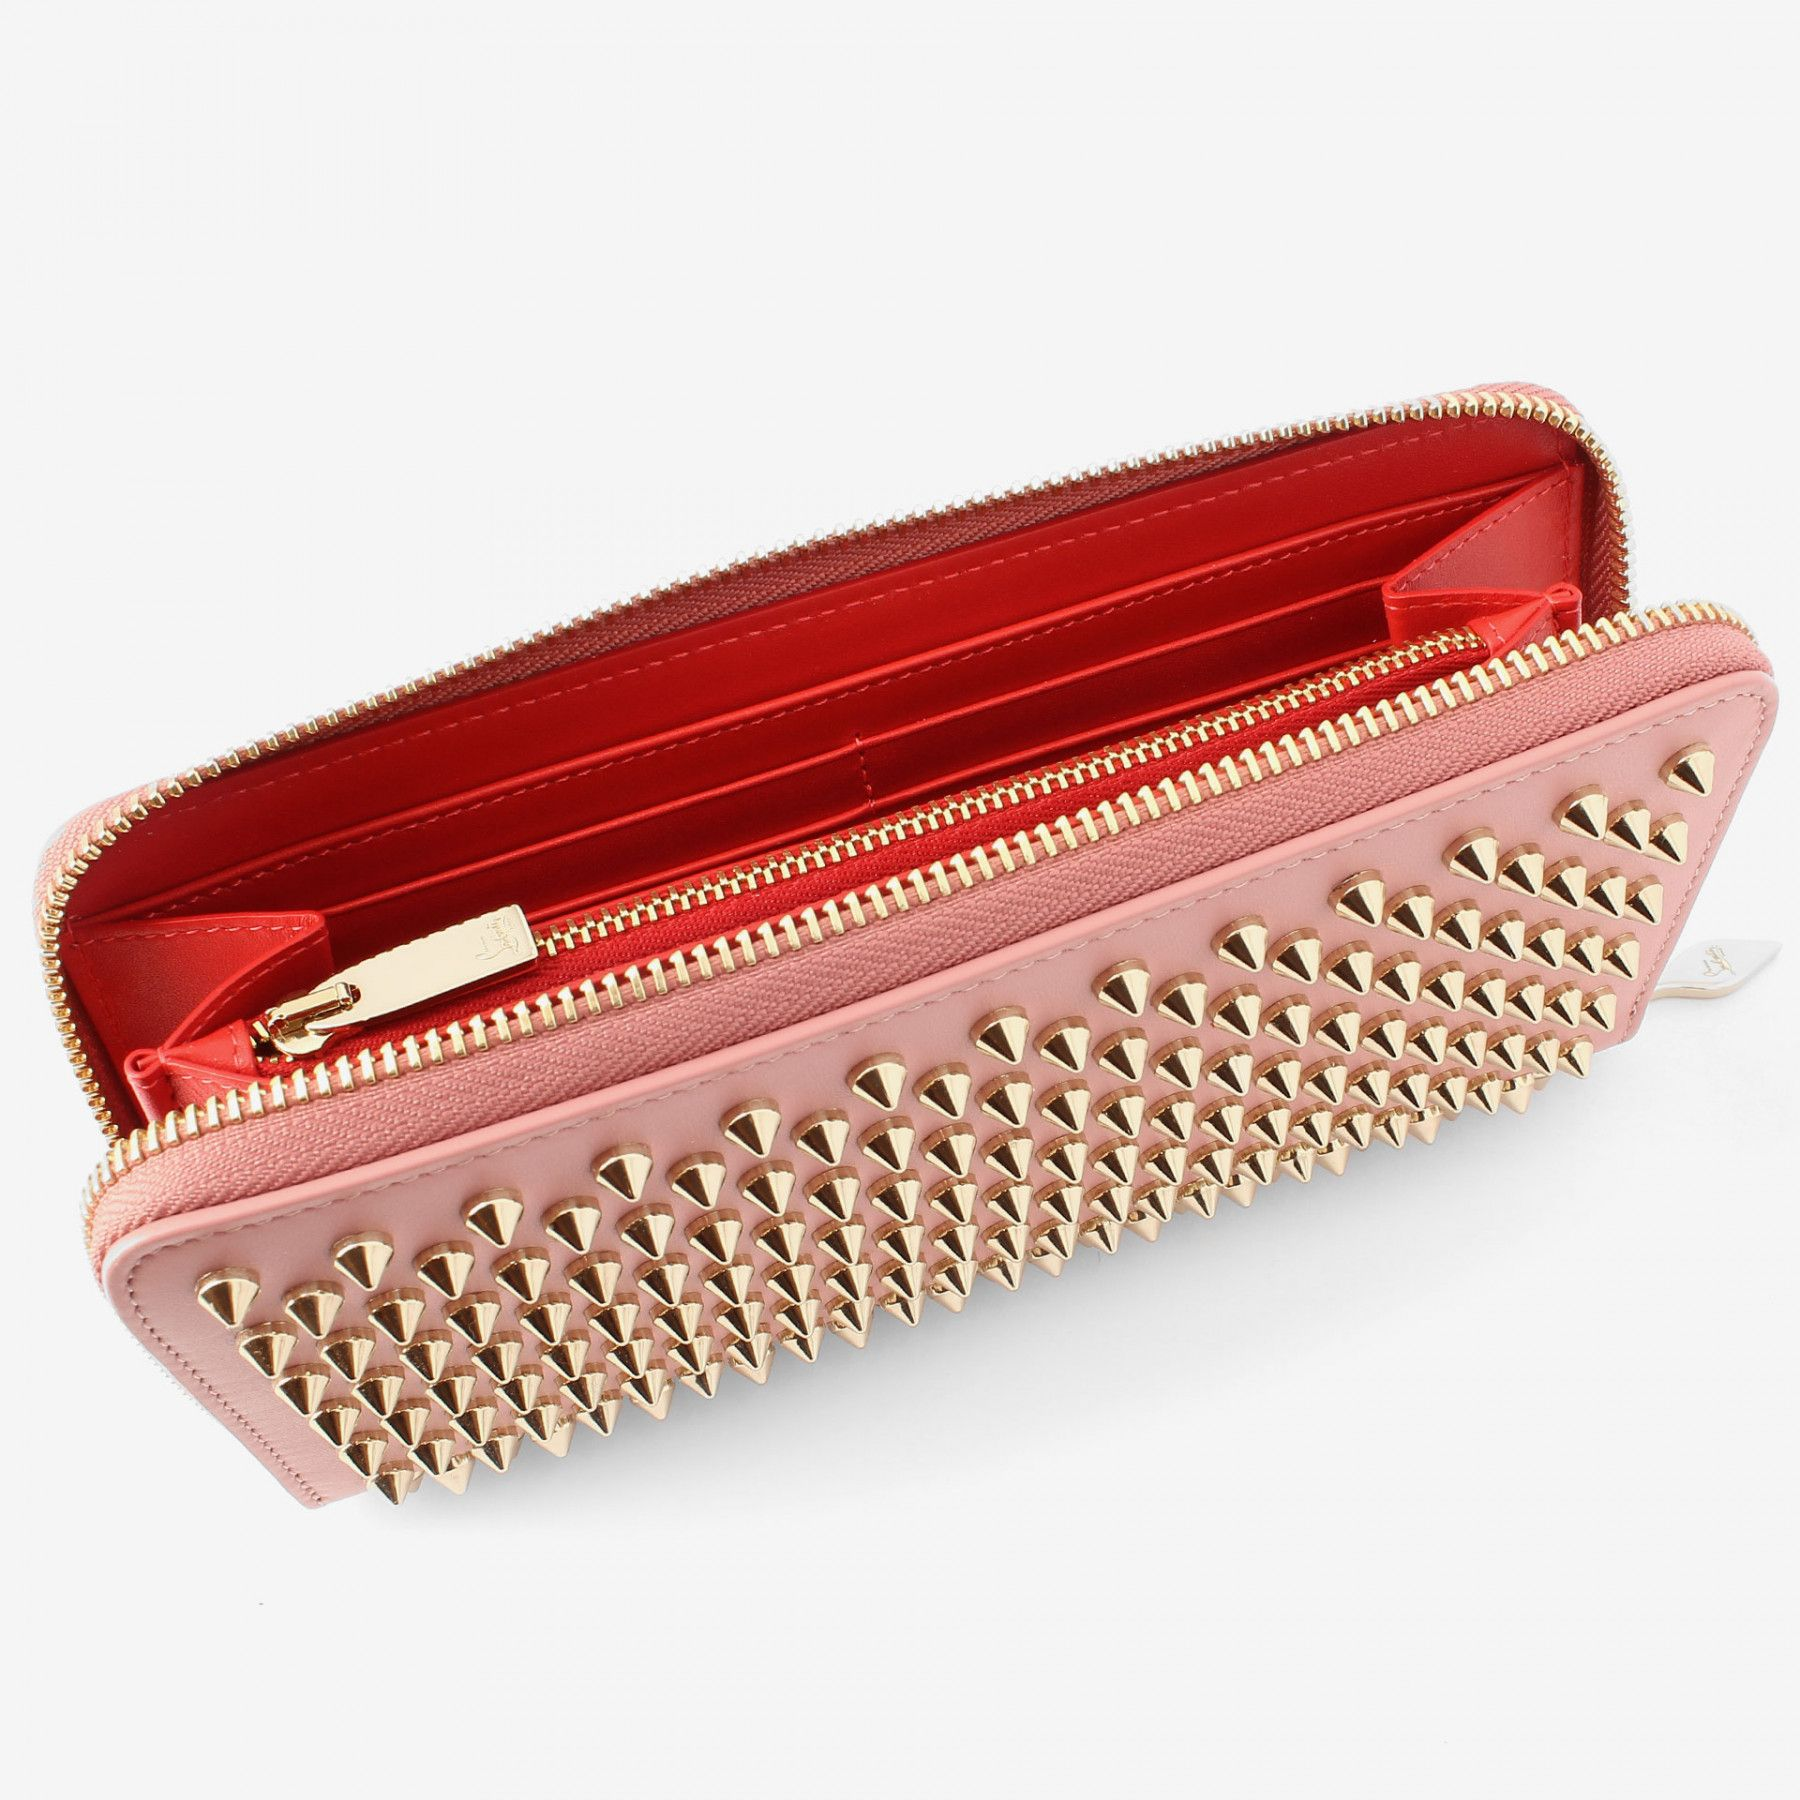 Outlet Professional Panettone bordeaux spikes wallet Christian Louboutin Best Prices Cheap Online Outlet Looking For Affordable Sale Online i9SgSG